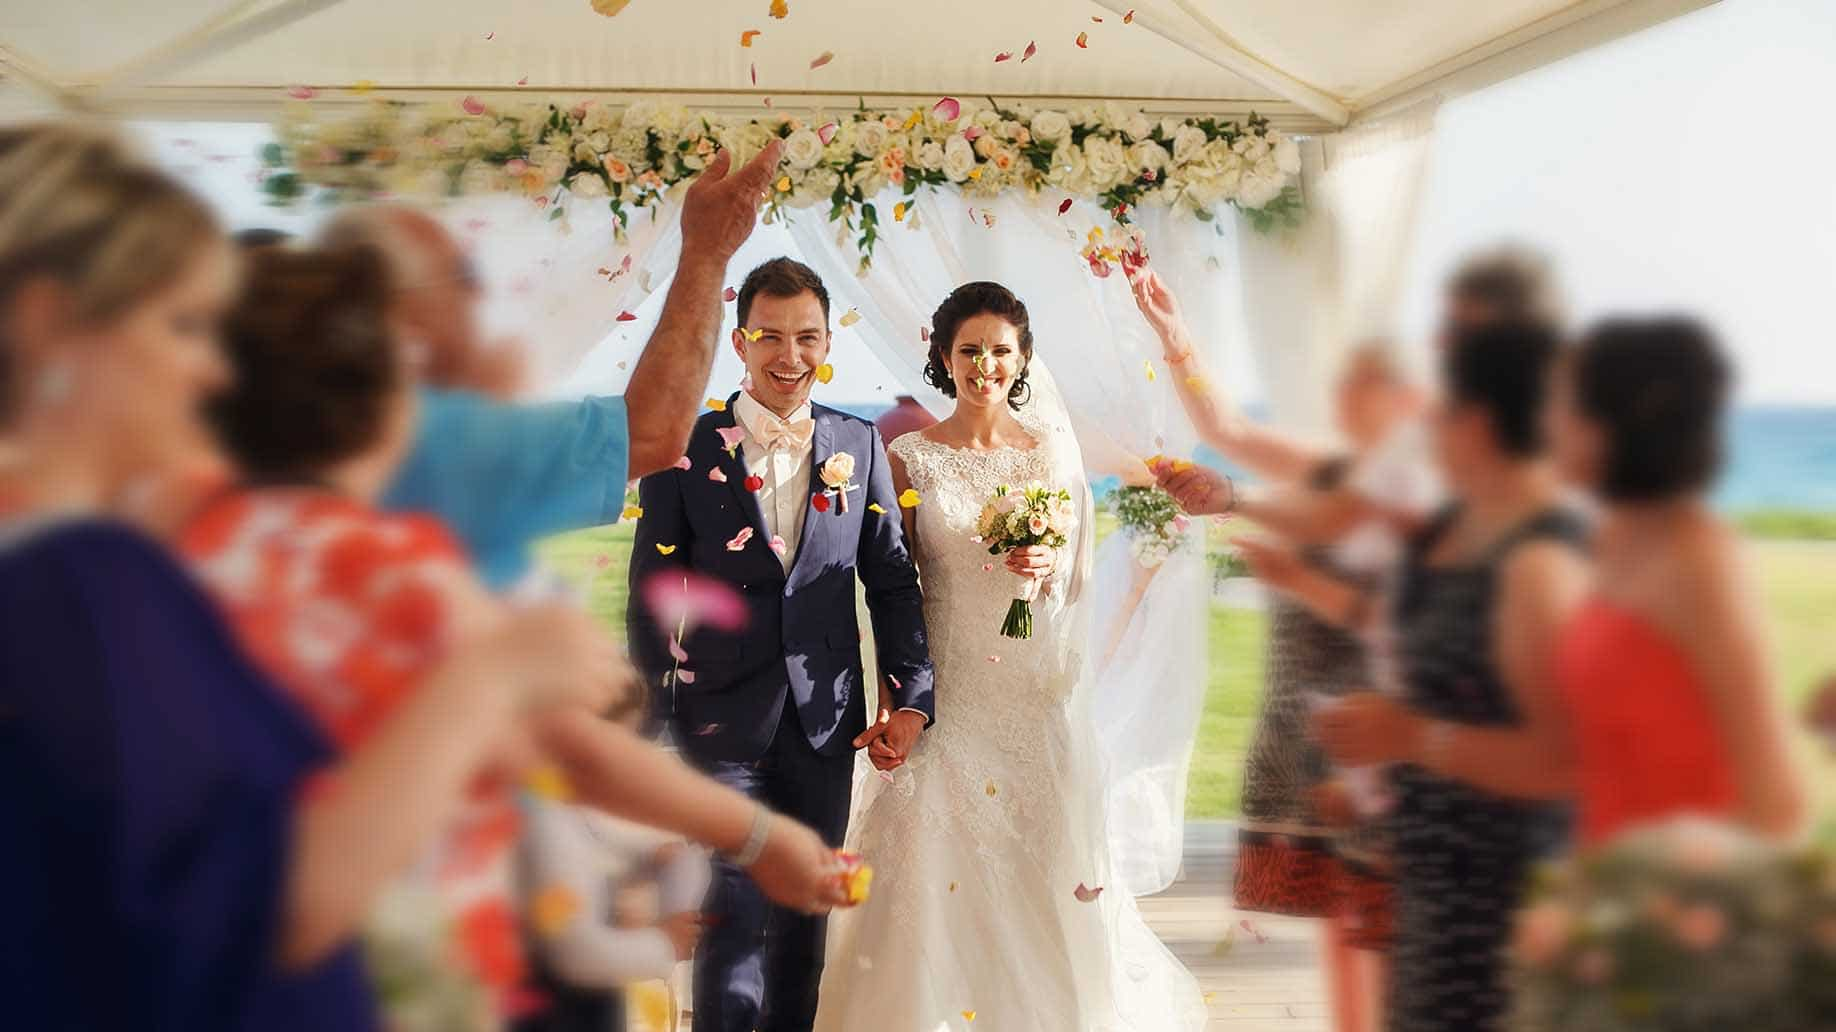 Ceremony And Reception Music: 10 Ideas To Save Money On Wedding Ceremony & Reception